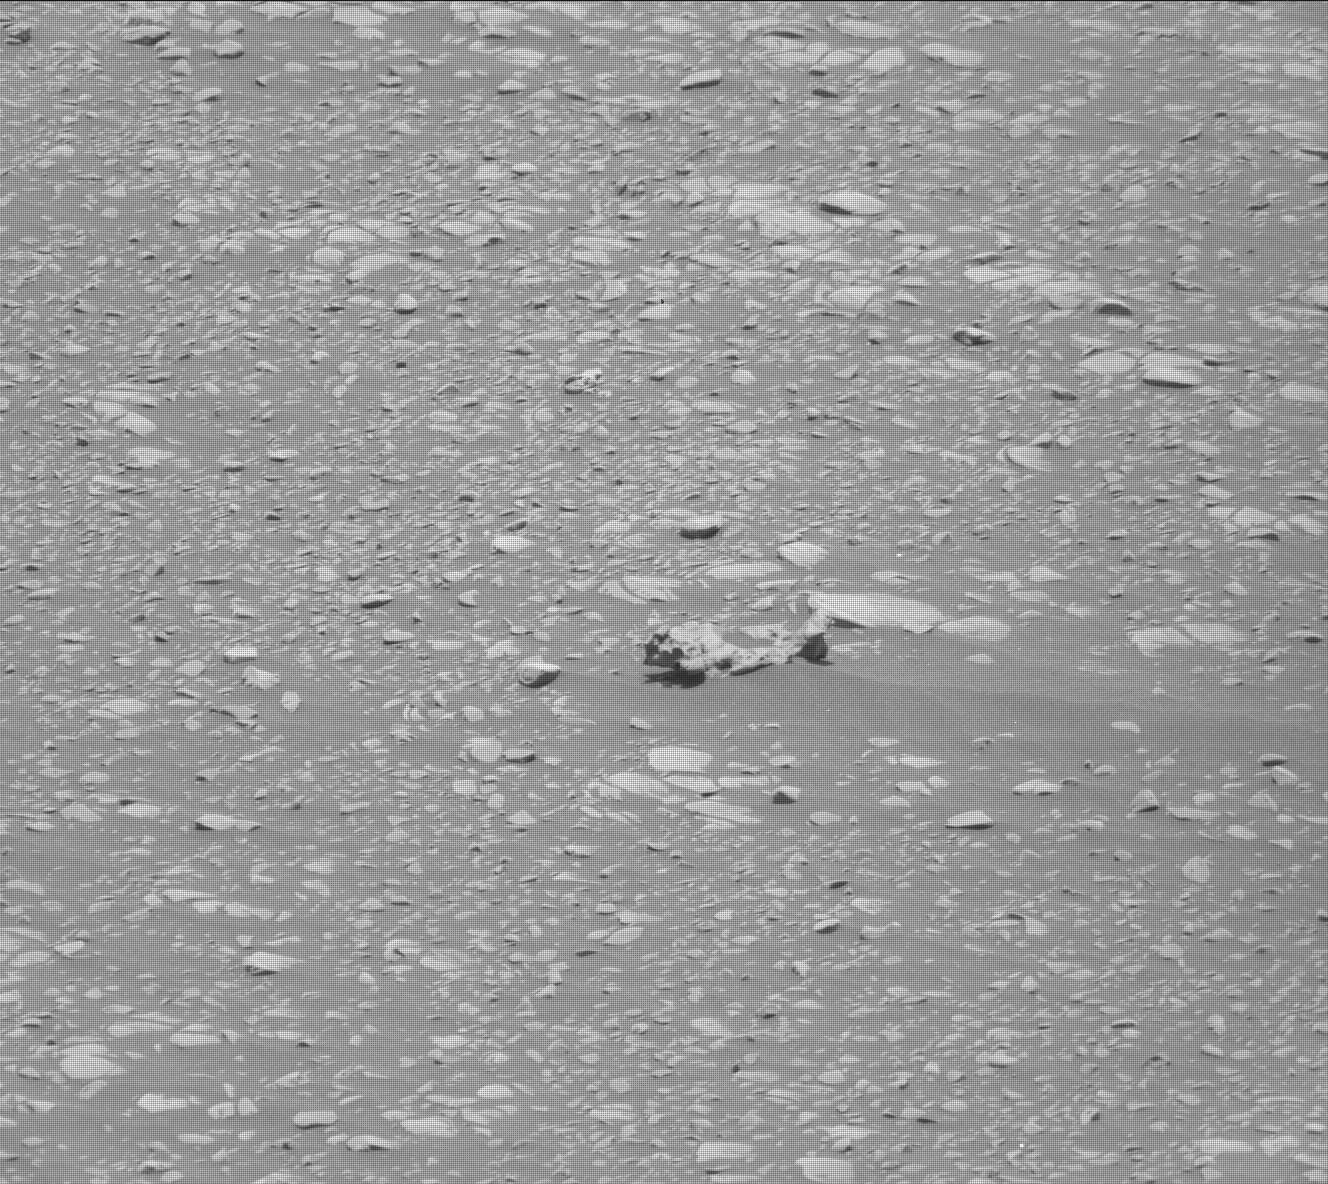 Sol 2374: Taking some time for remote science